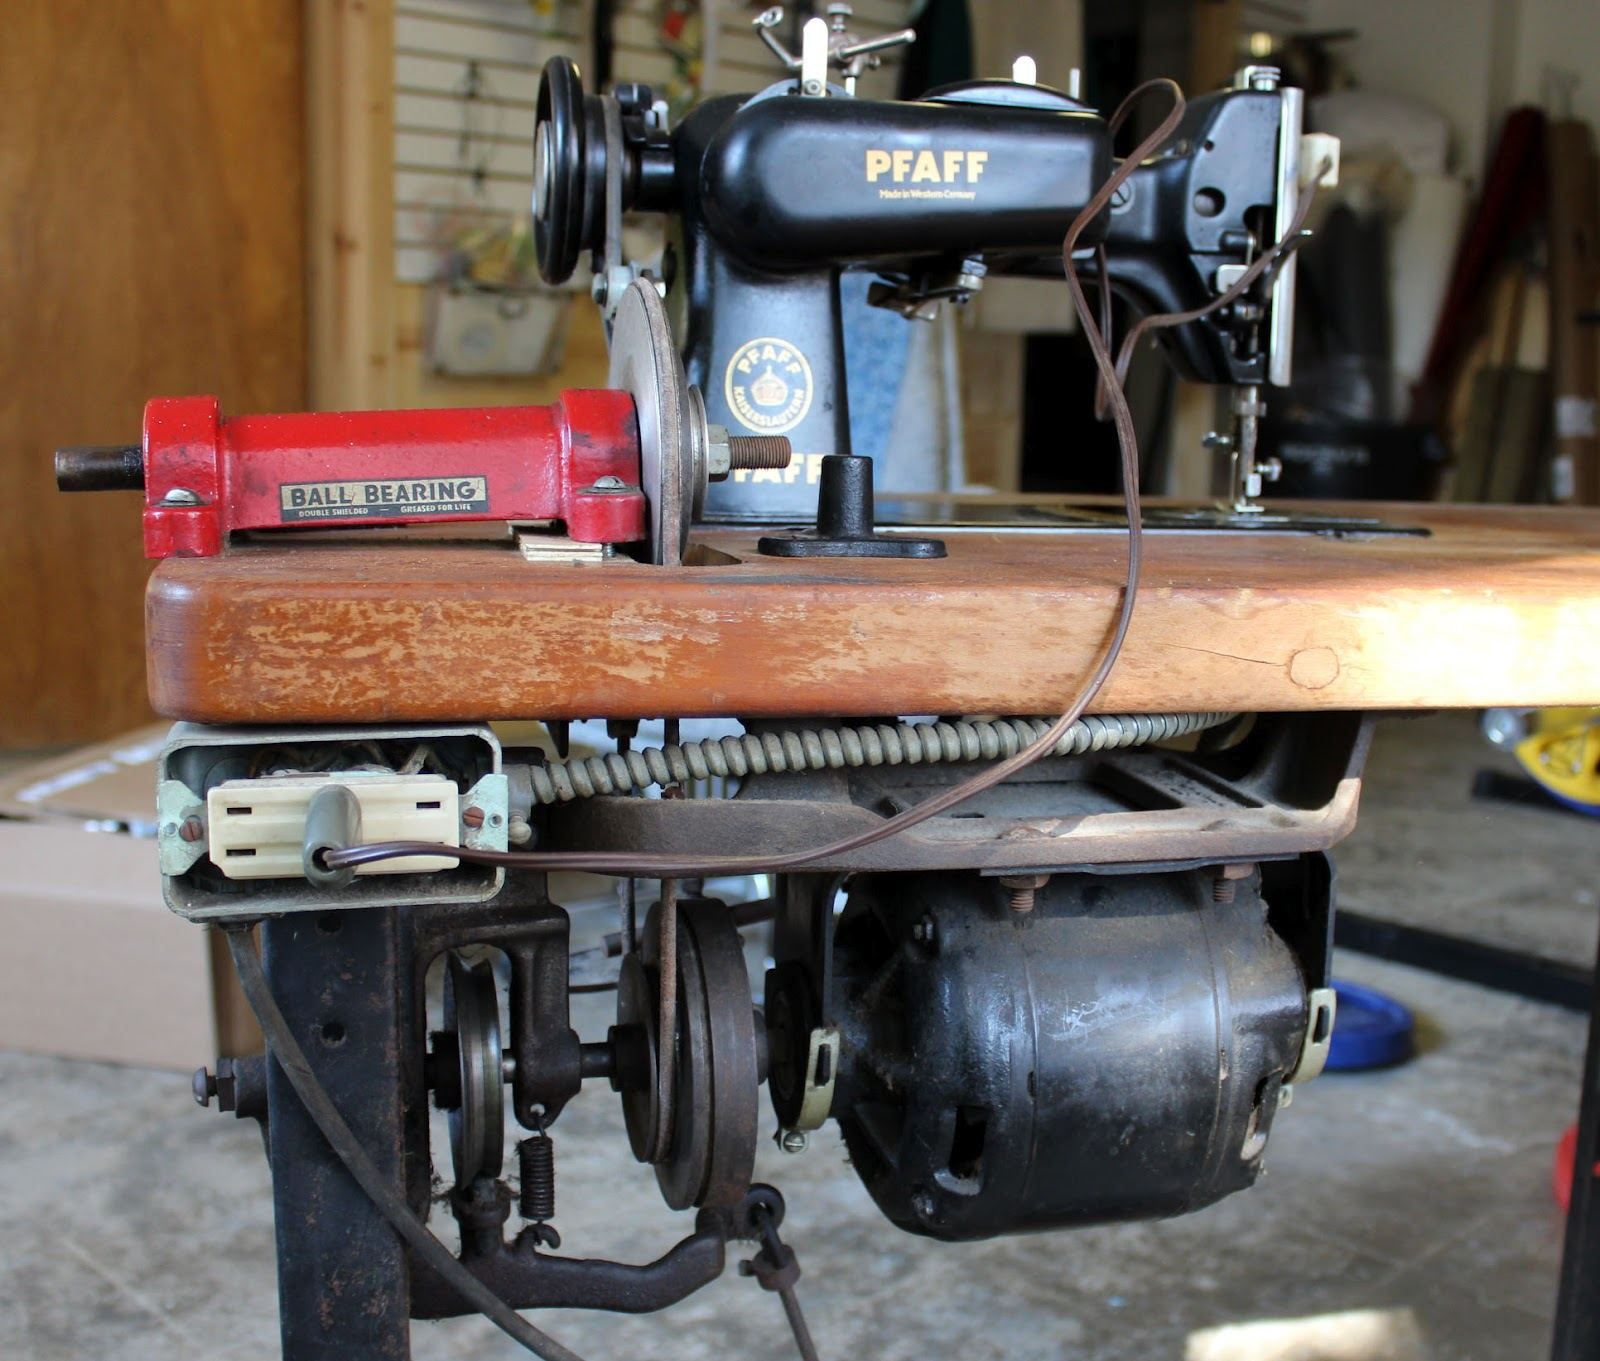 A Sewing Life: Pfaff 130 in an Industrial Table